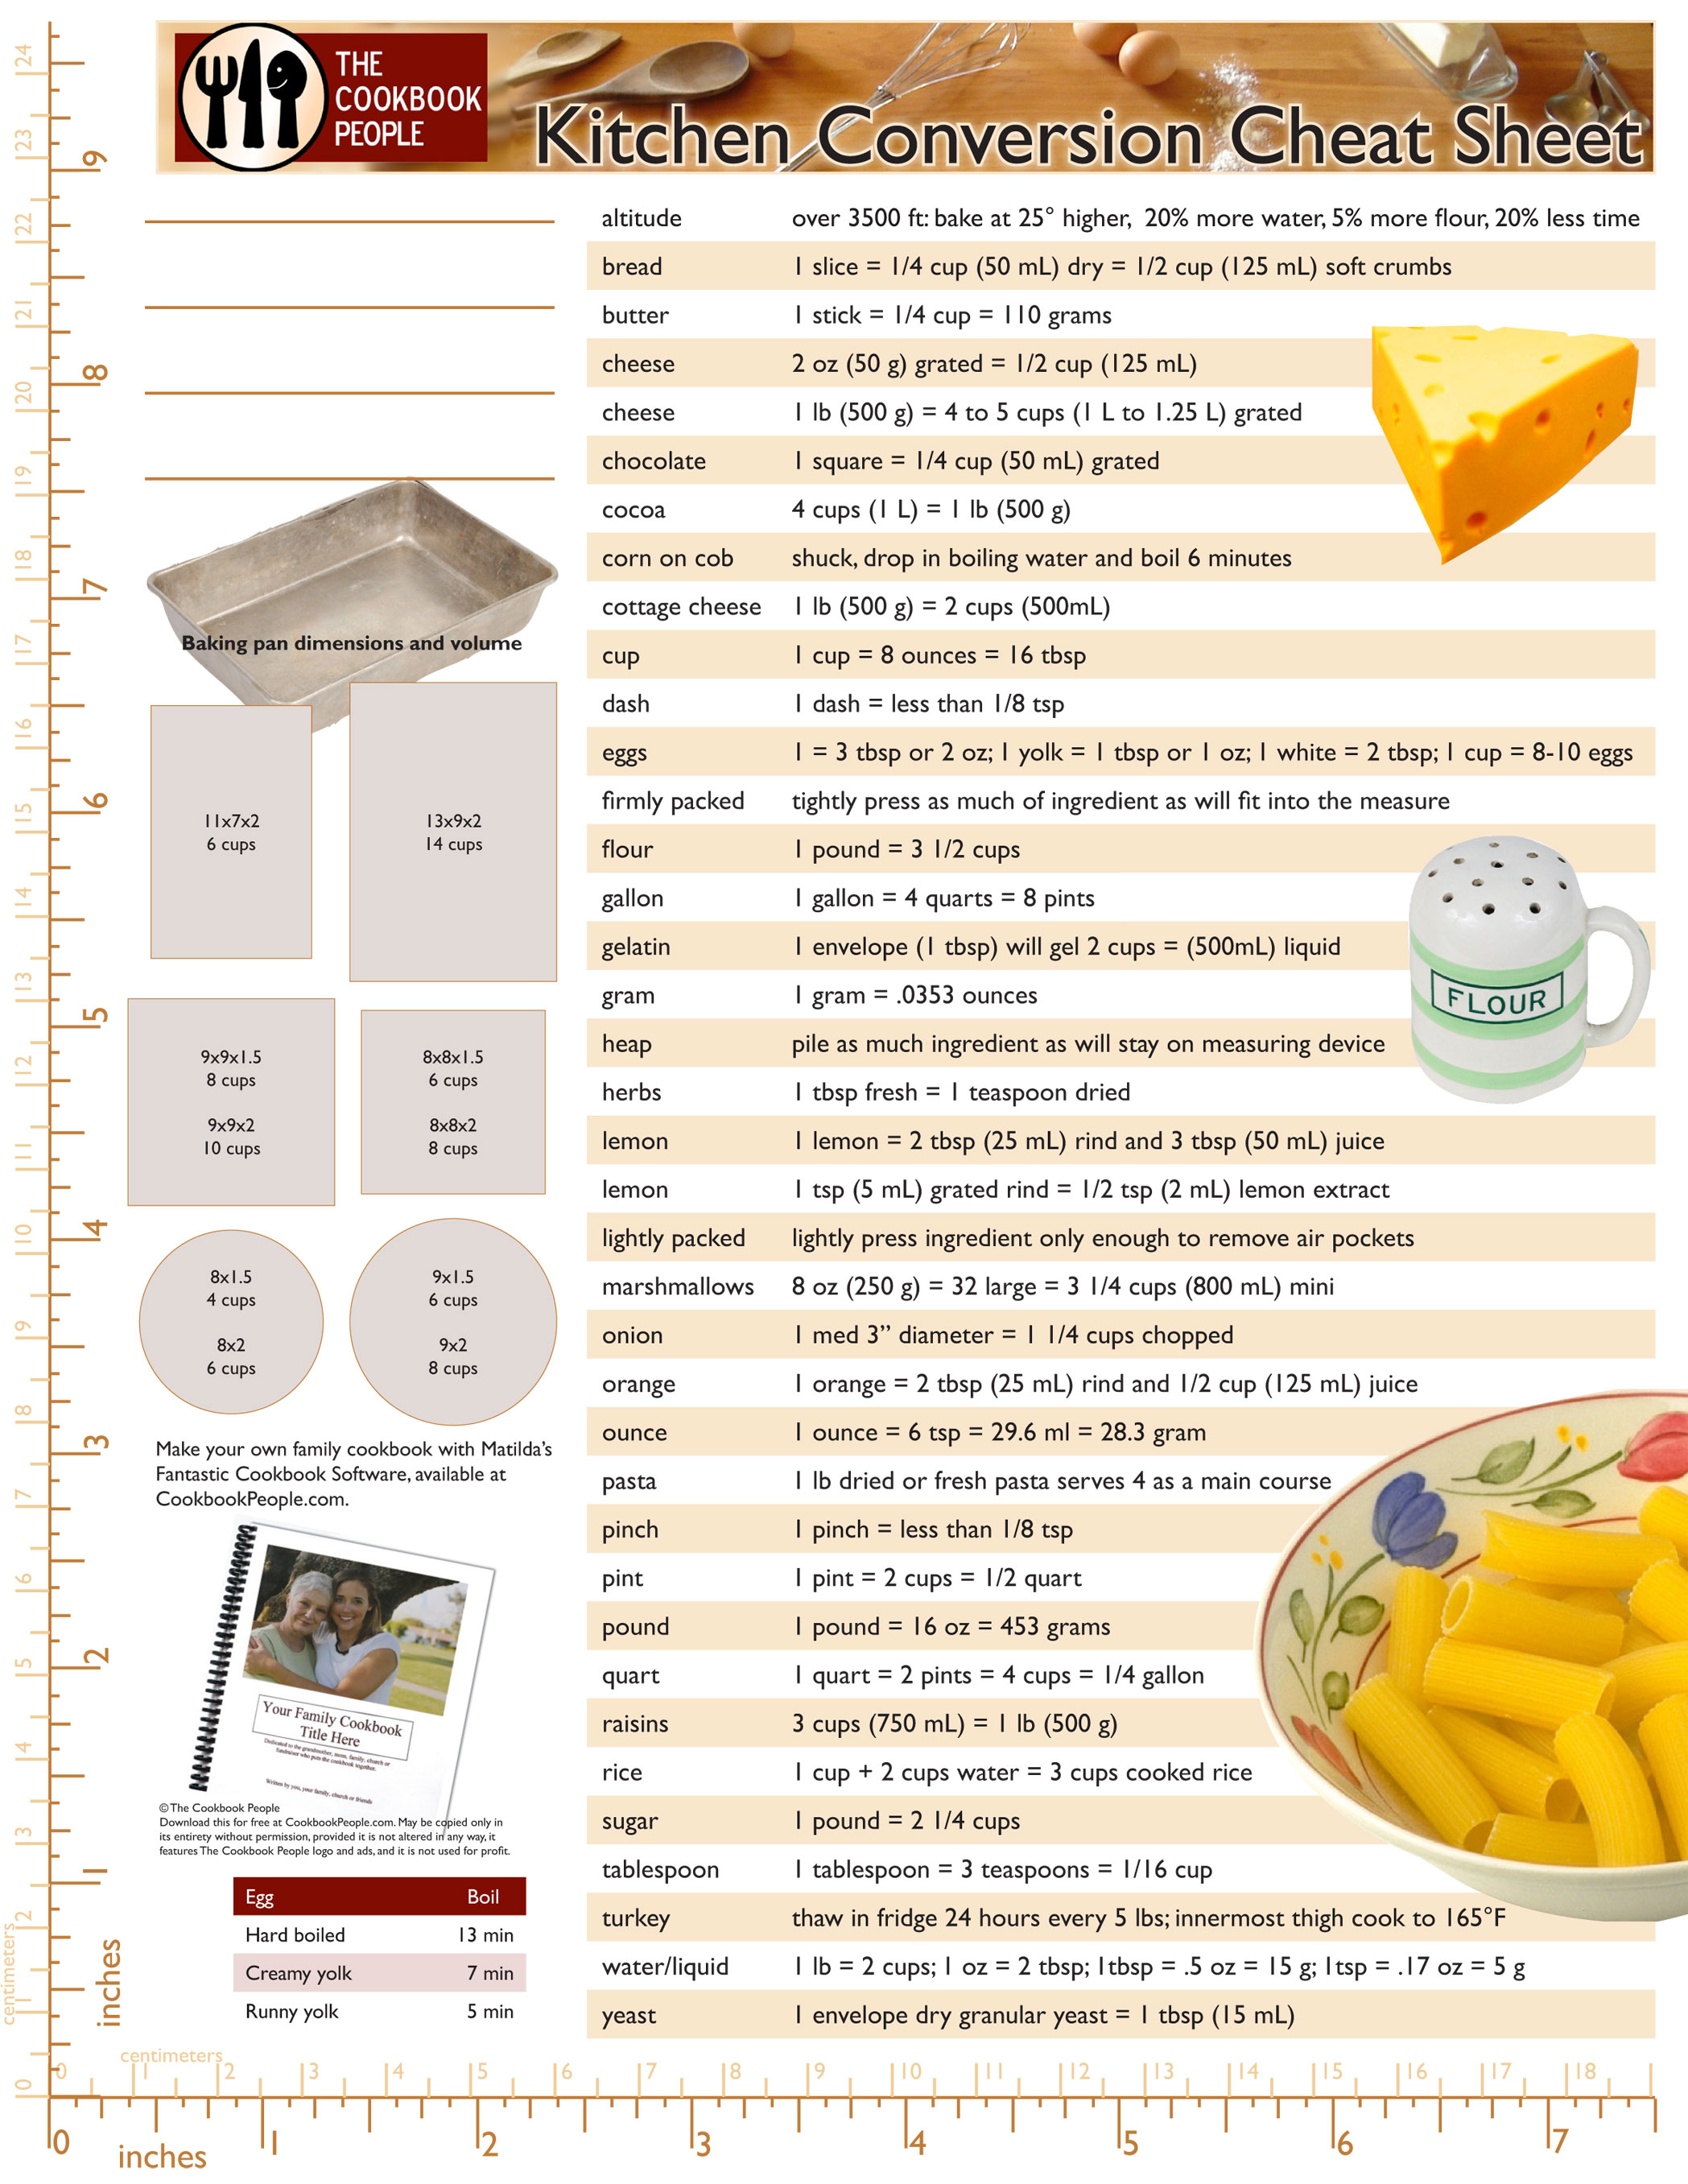 Family Cookbook Site Releases Free Printer Friendly Kitchen Measurement Conversion Chart